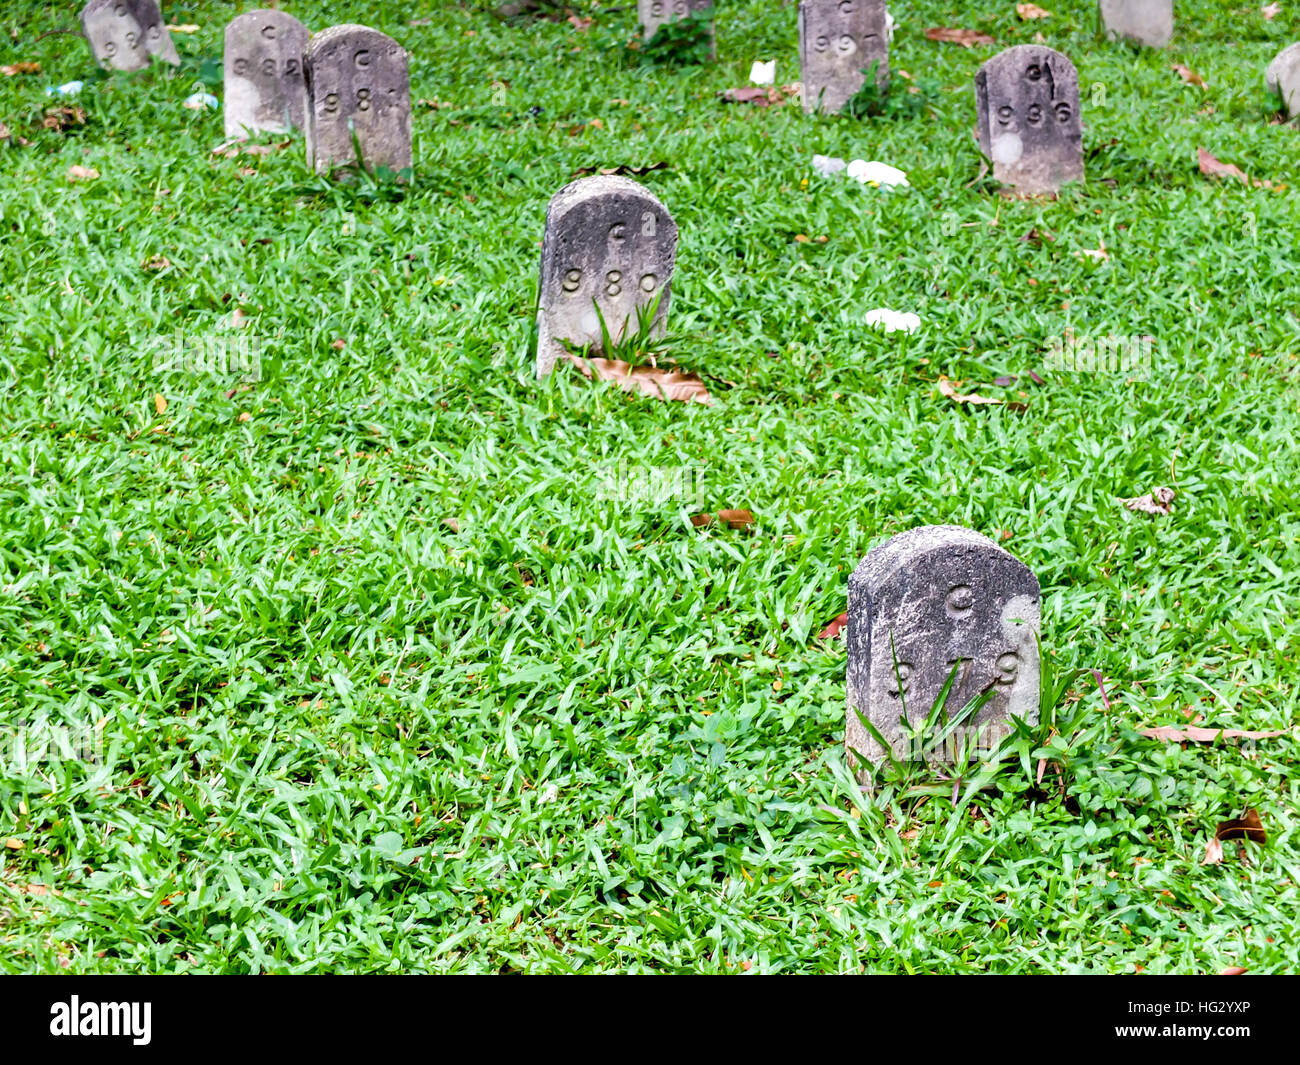 Tidy tombstone on the grass - Stock Image